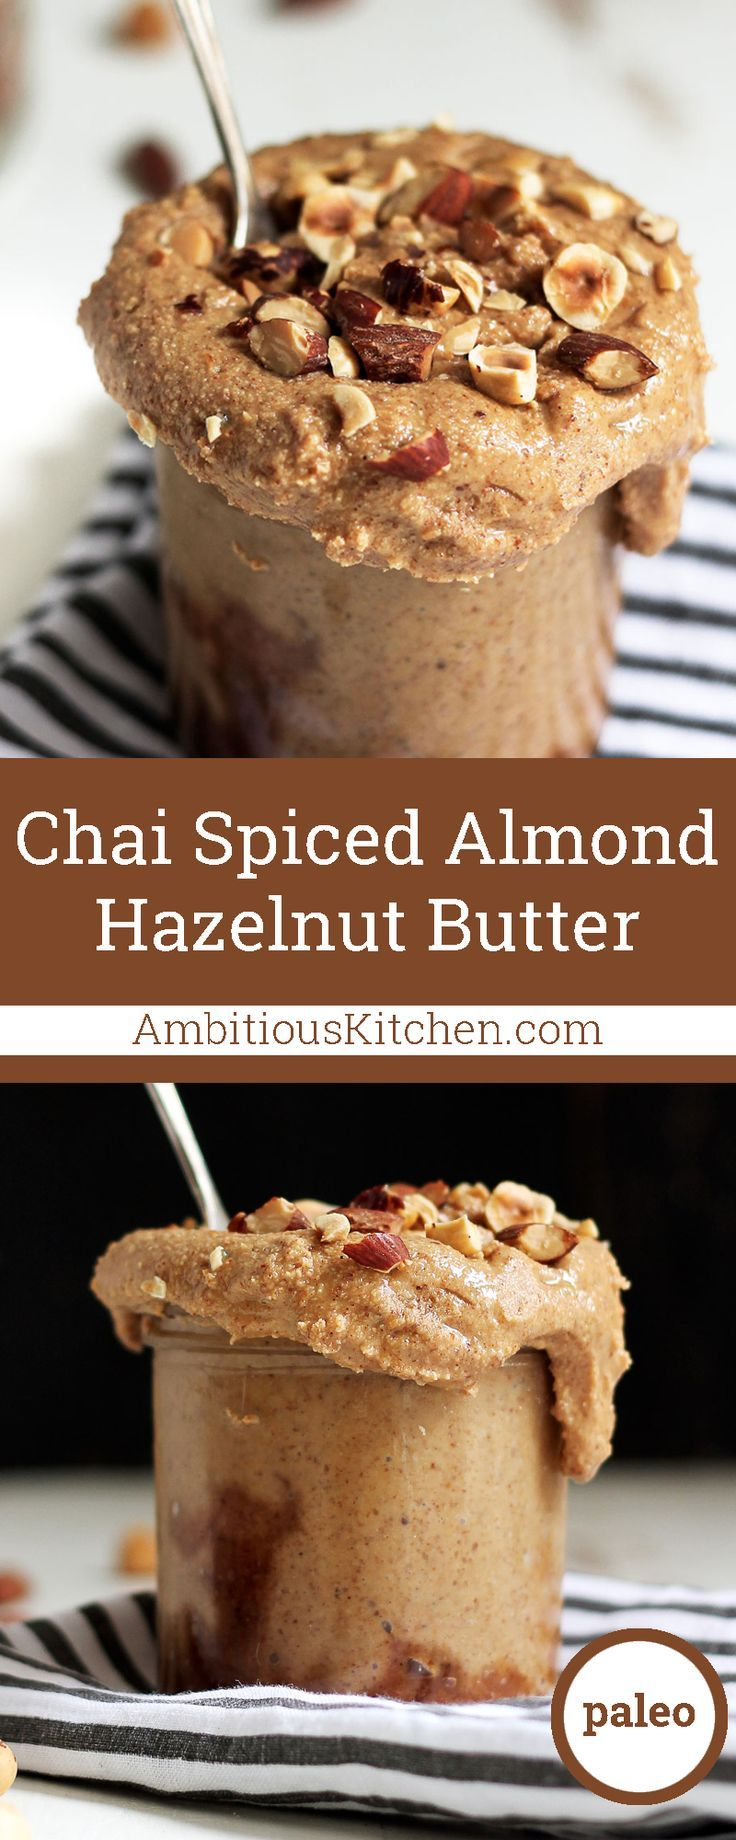 Chai spices make this almond hazelnut butter taste like your favorite chai tea latte. Spread it on toast or fruit for an easy, healthy snack!